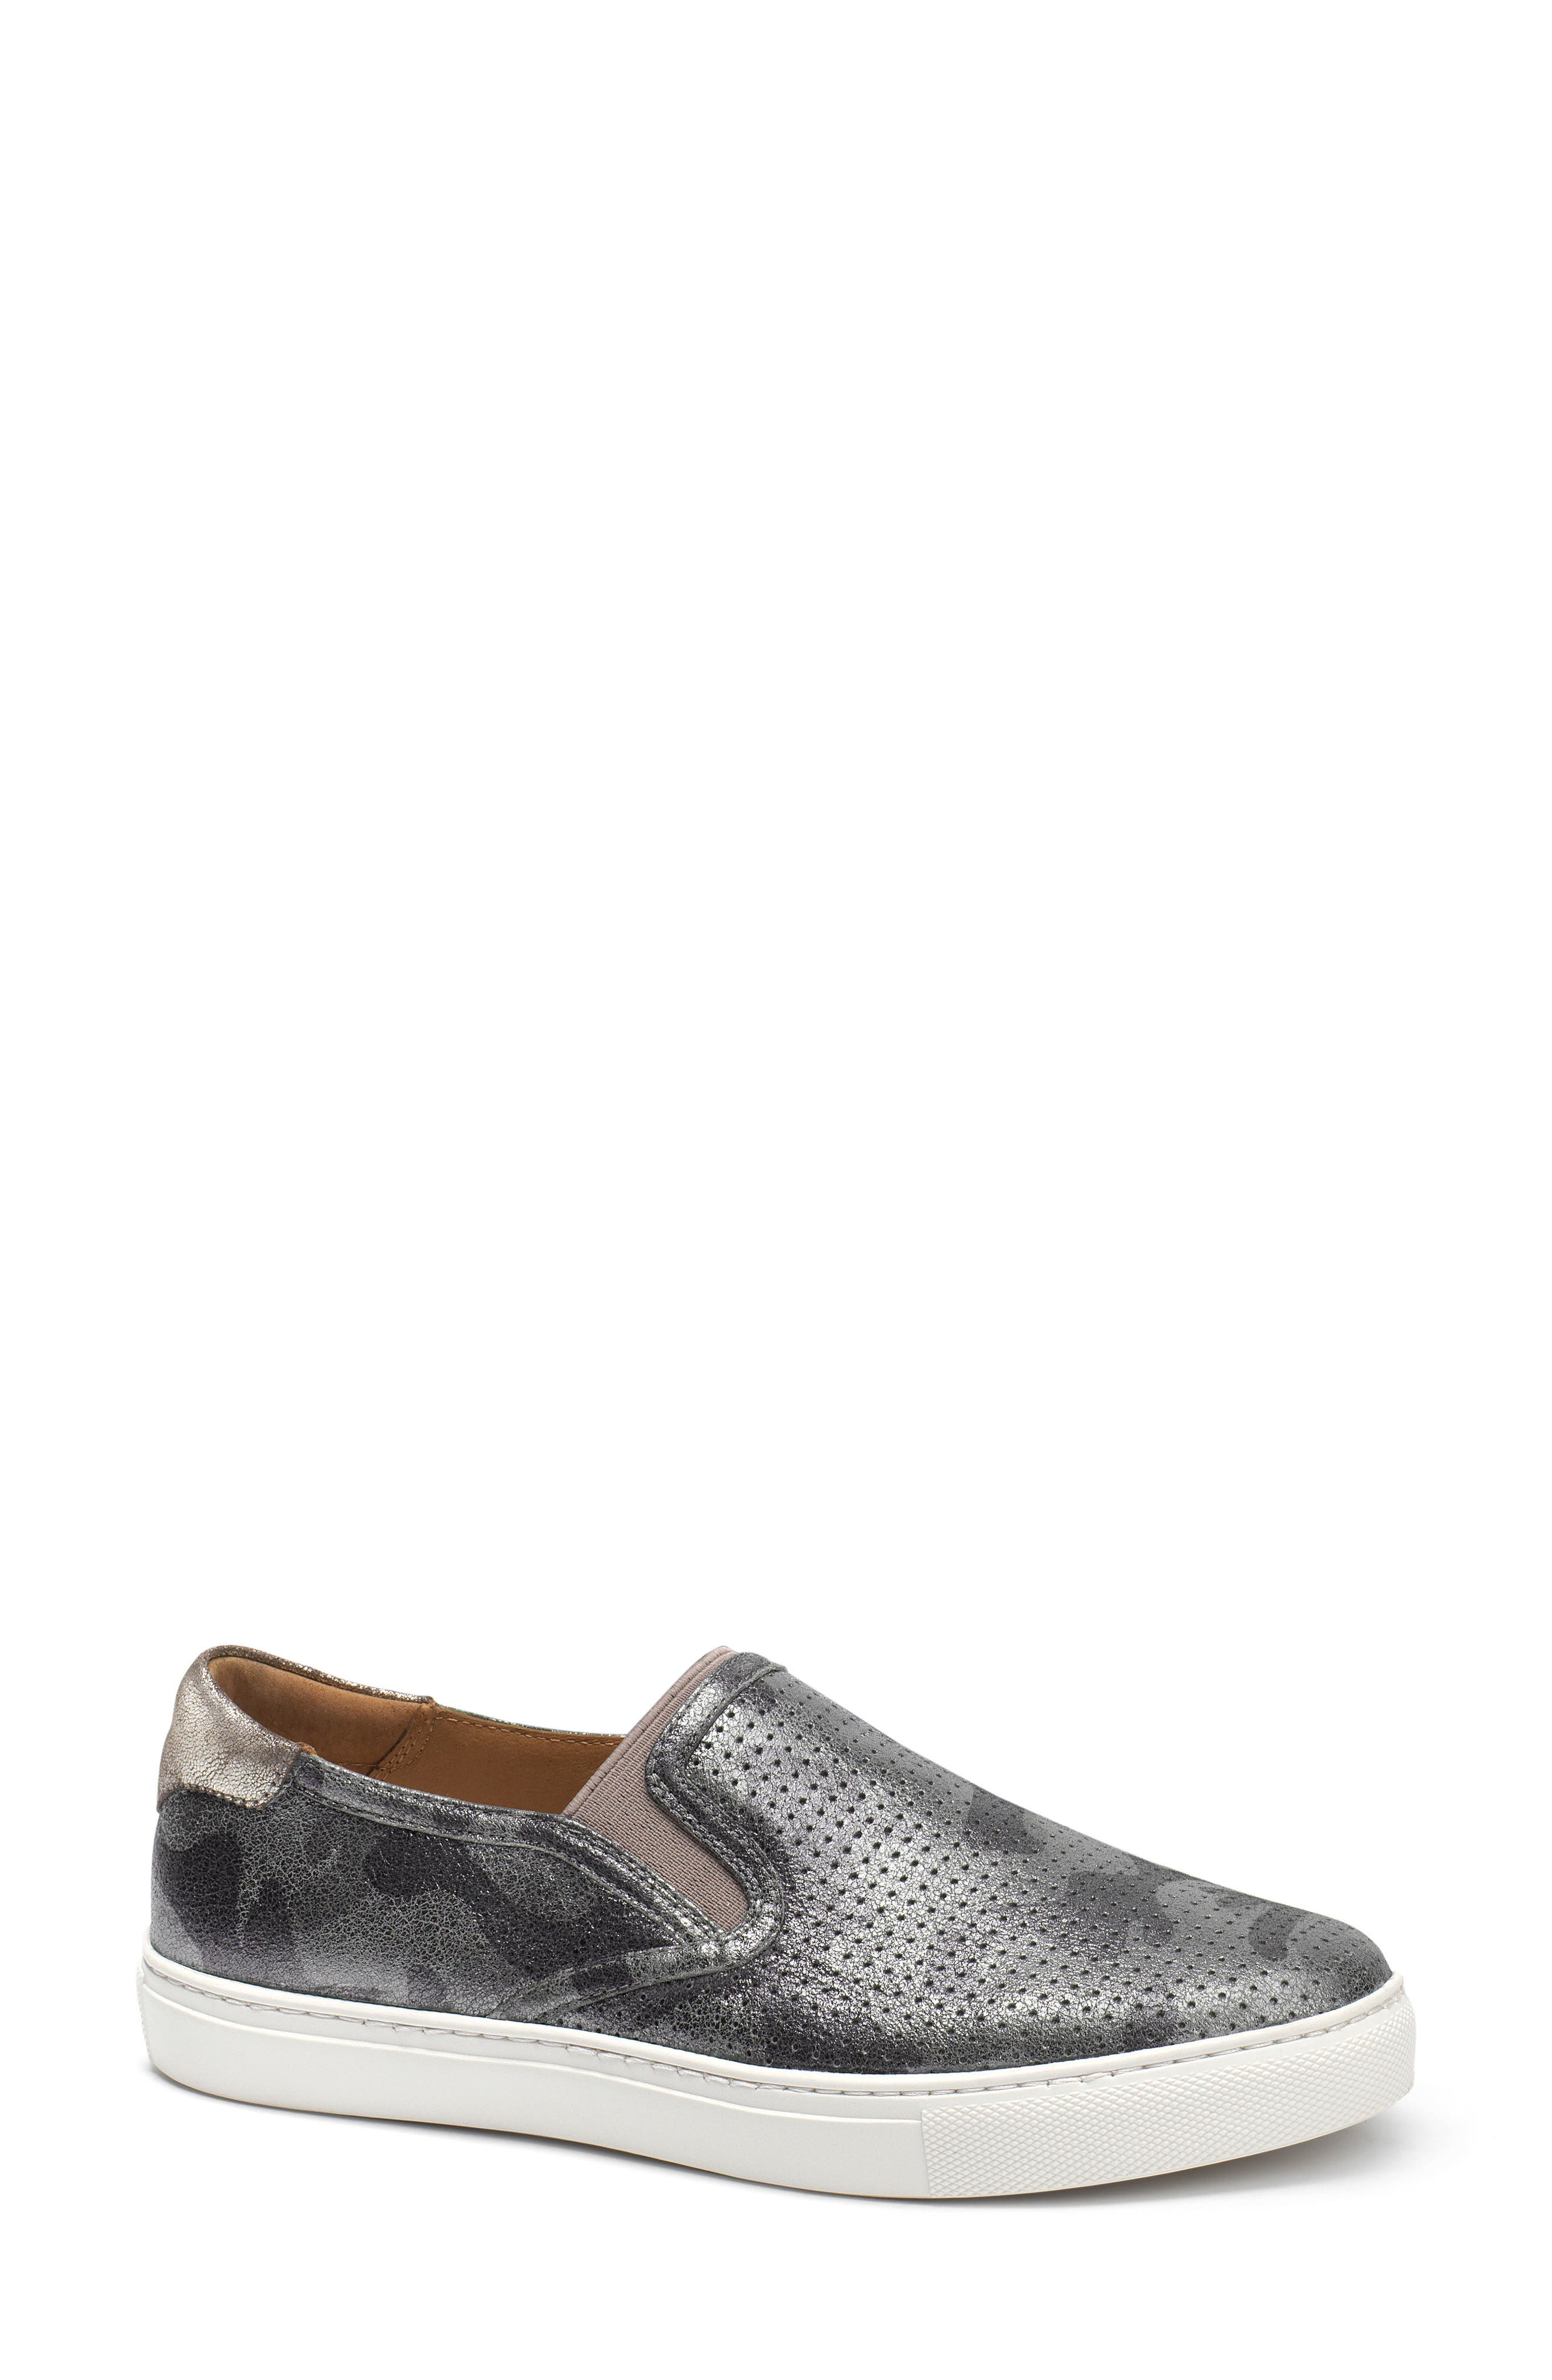 Lillian Water Resistant Slip-On Sneaker,                             Main thumbnail 1, color,                             PEWTER CAMO LEATHER